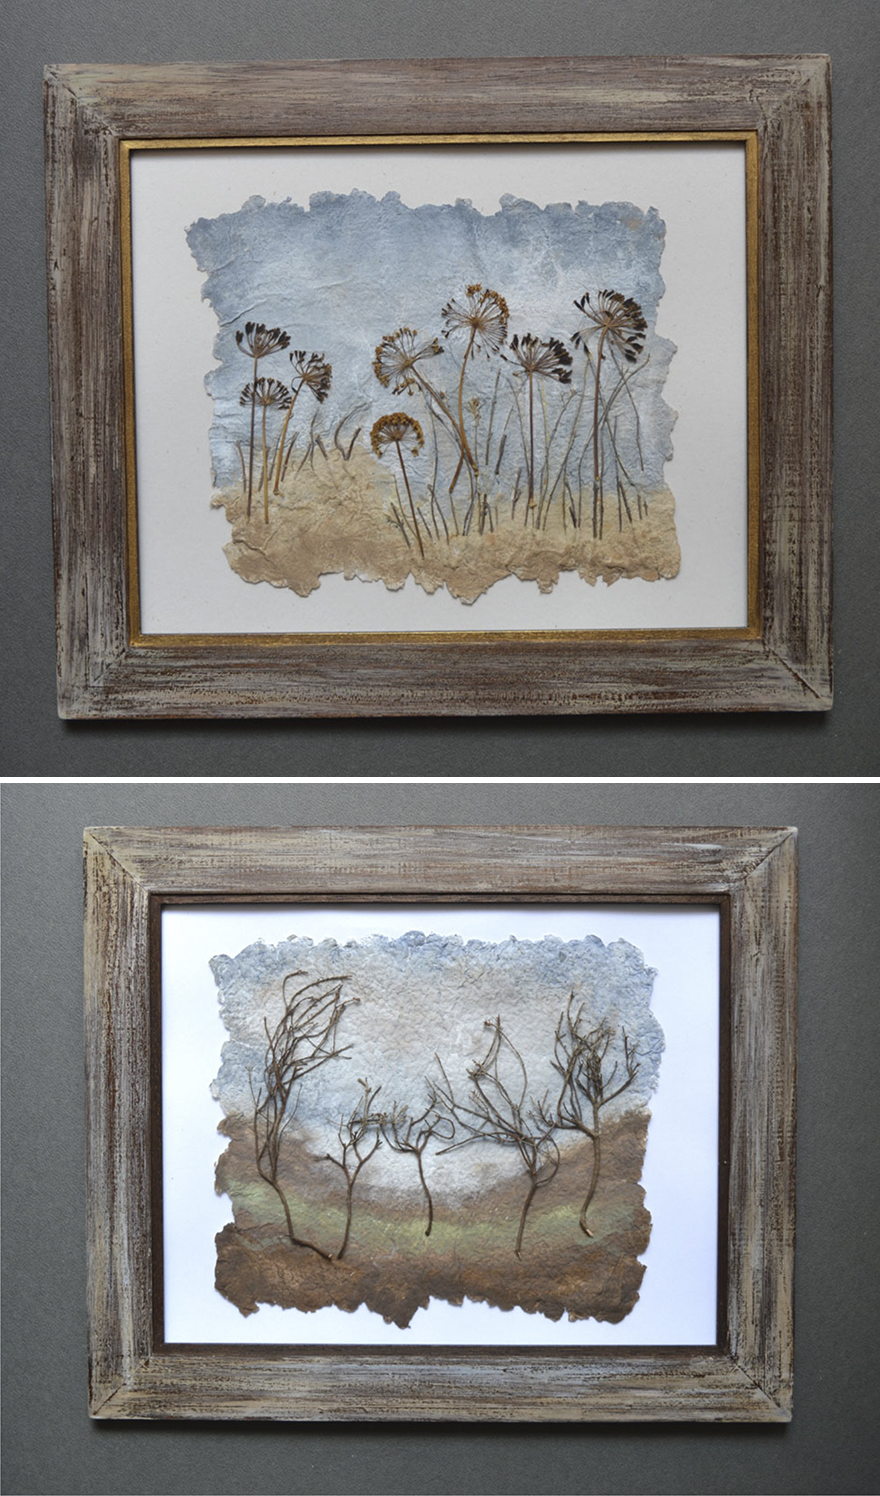 I Use Dried Pressed Plants And Painting To Create Original Artworks